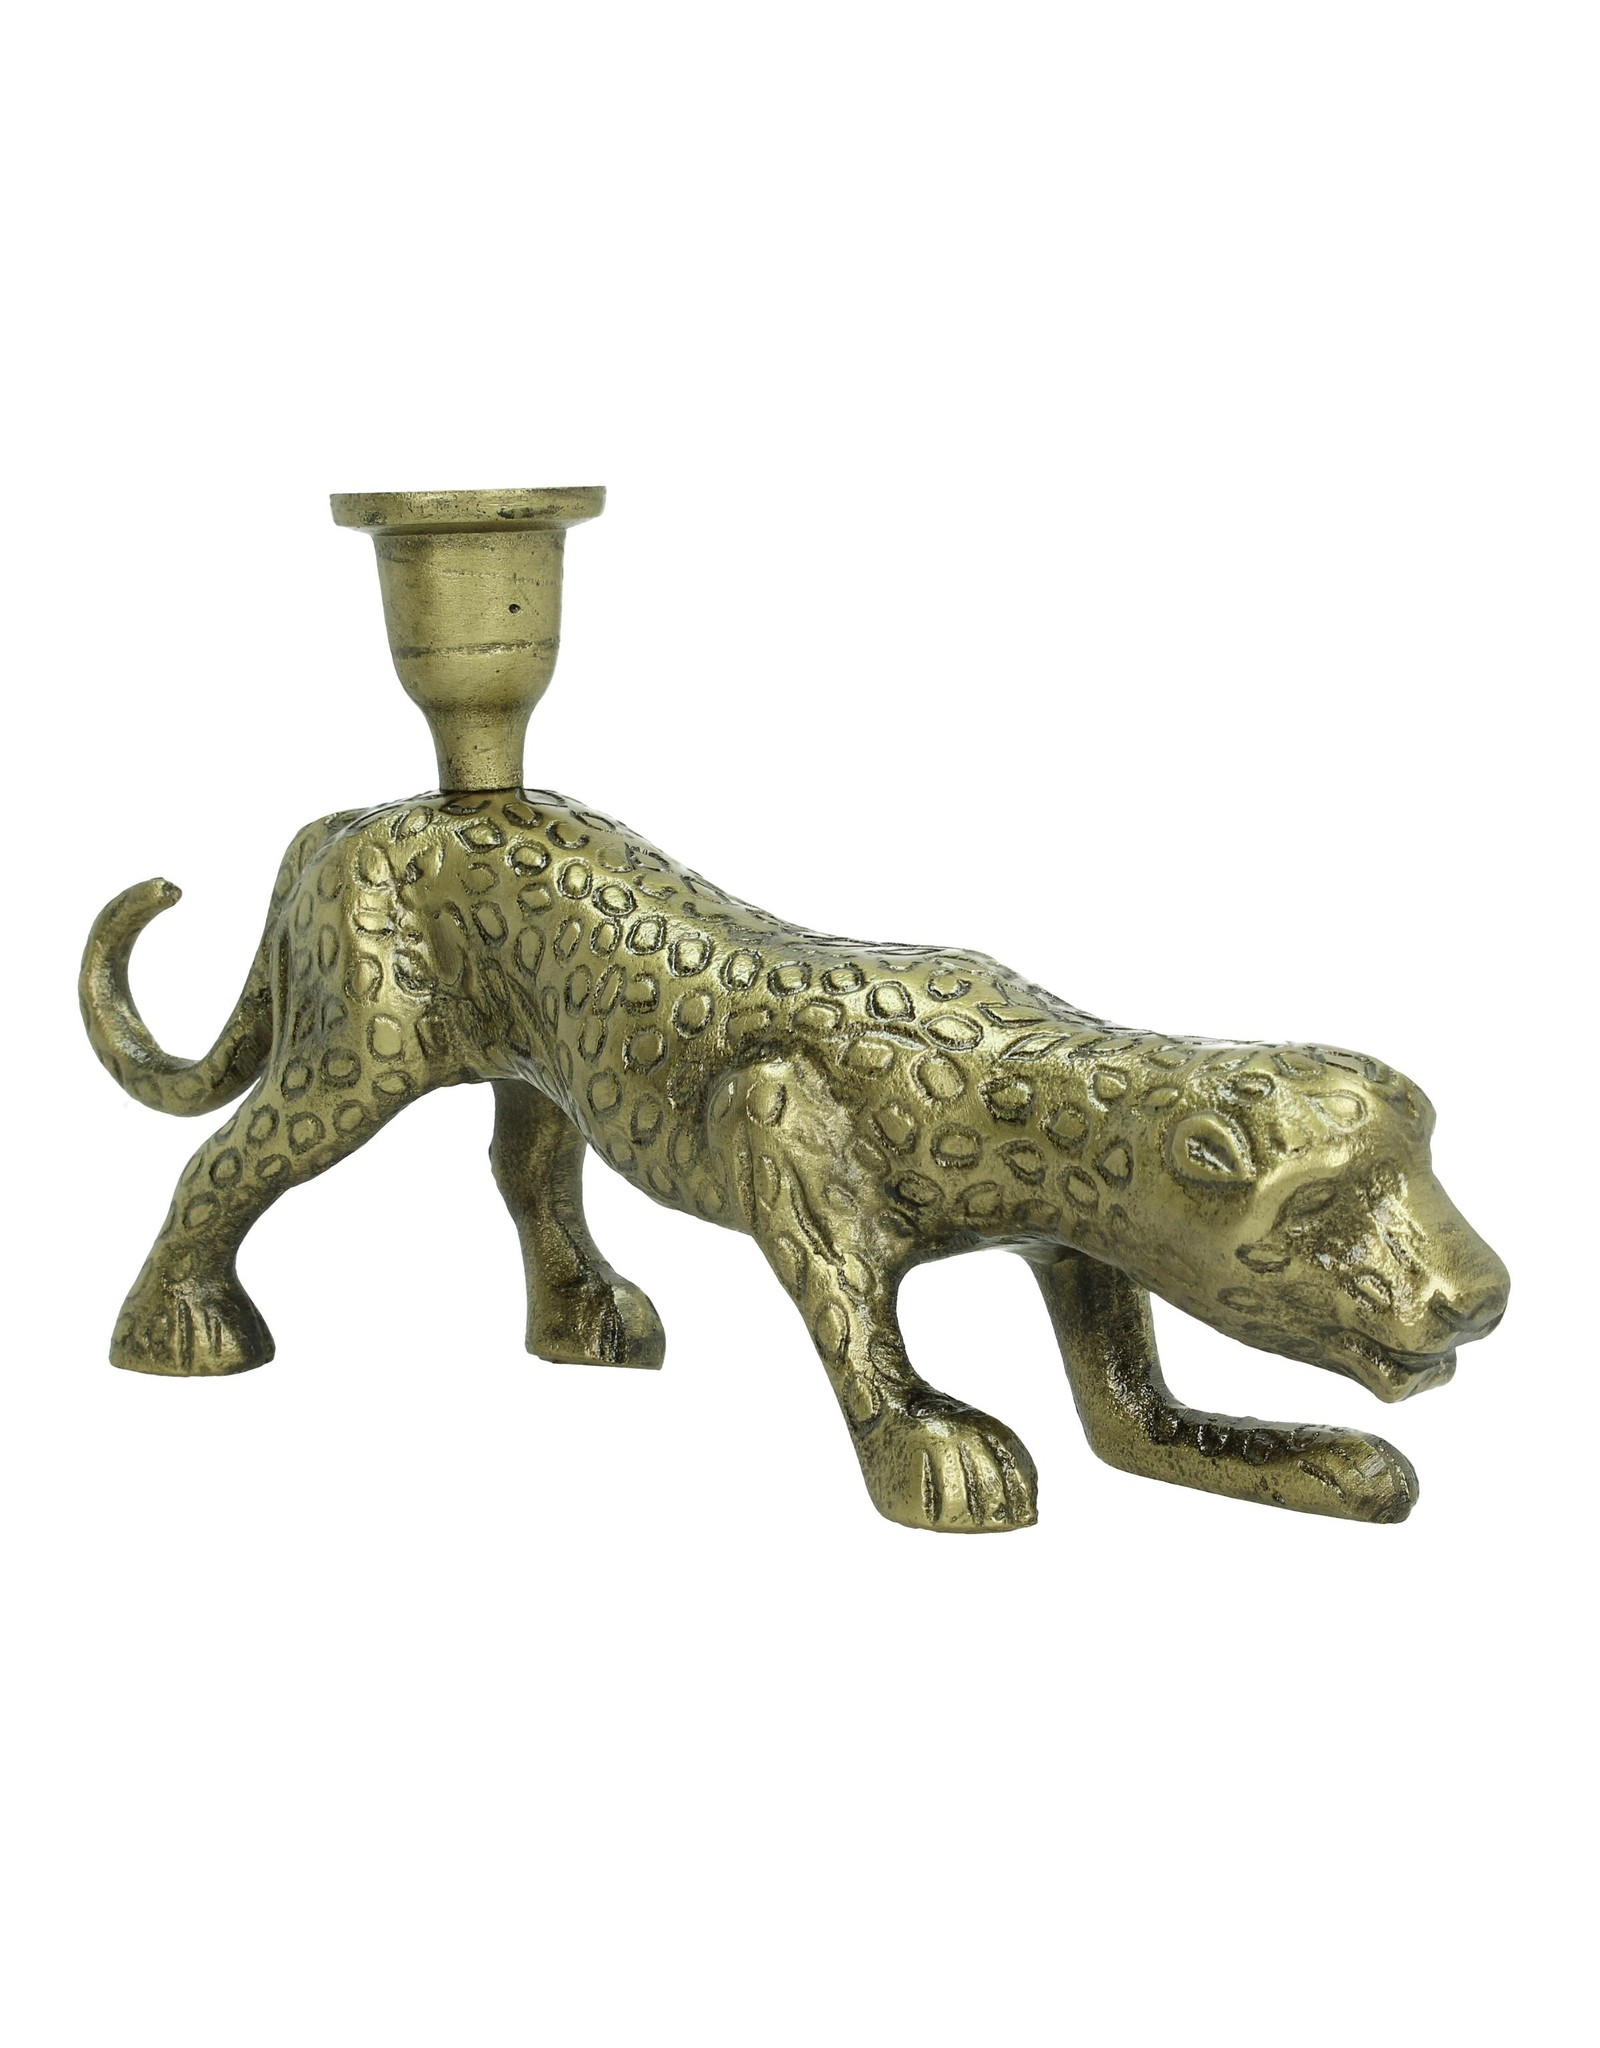 LOFT030 Candle Holder Panter Bronze 20x13x28cm